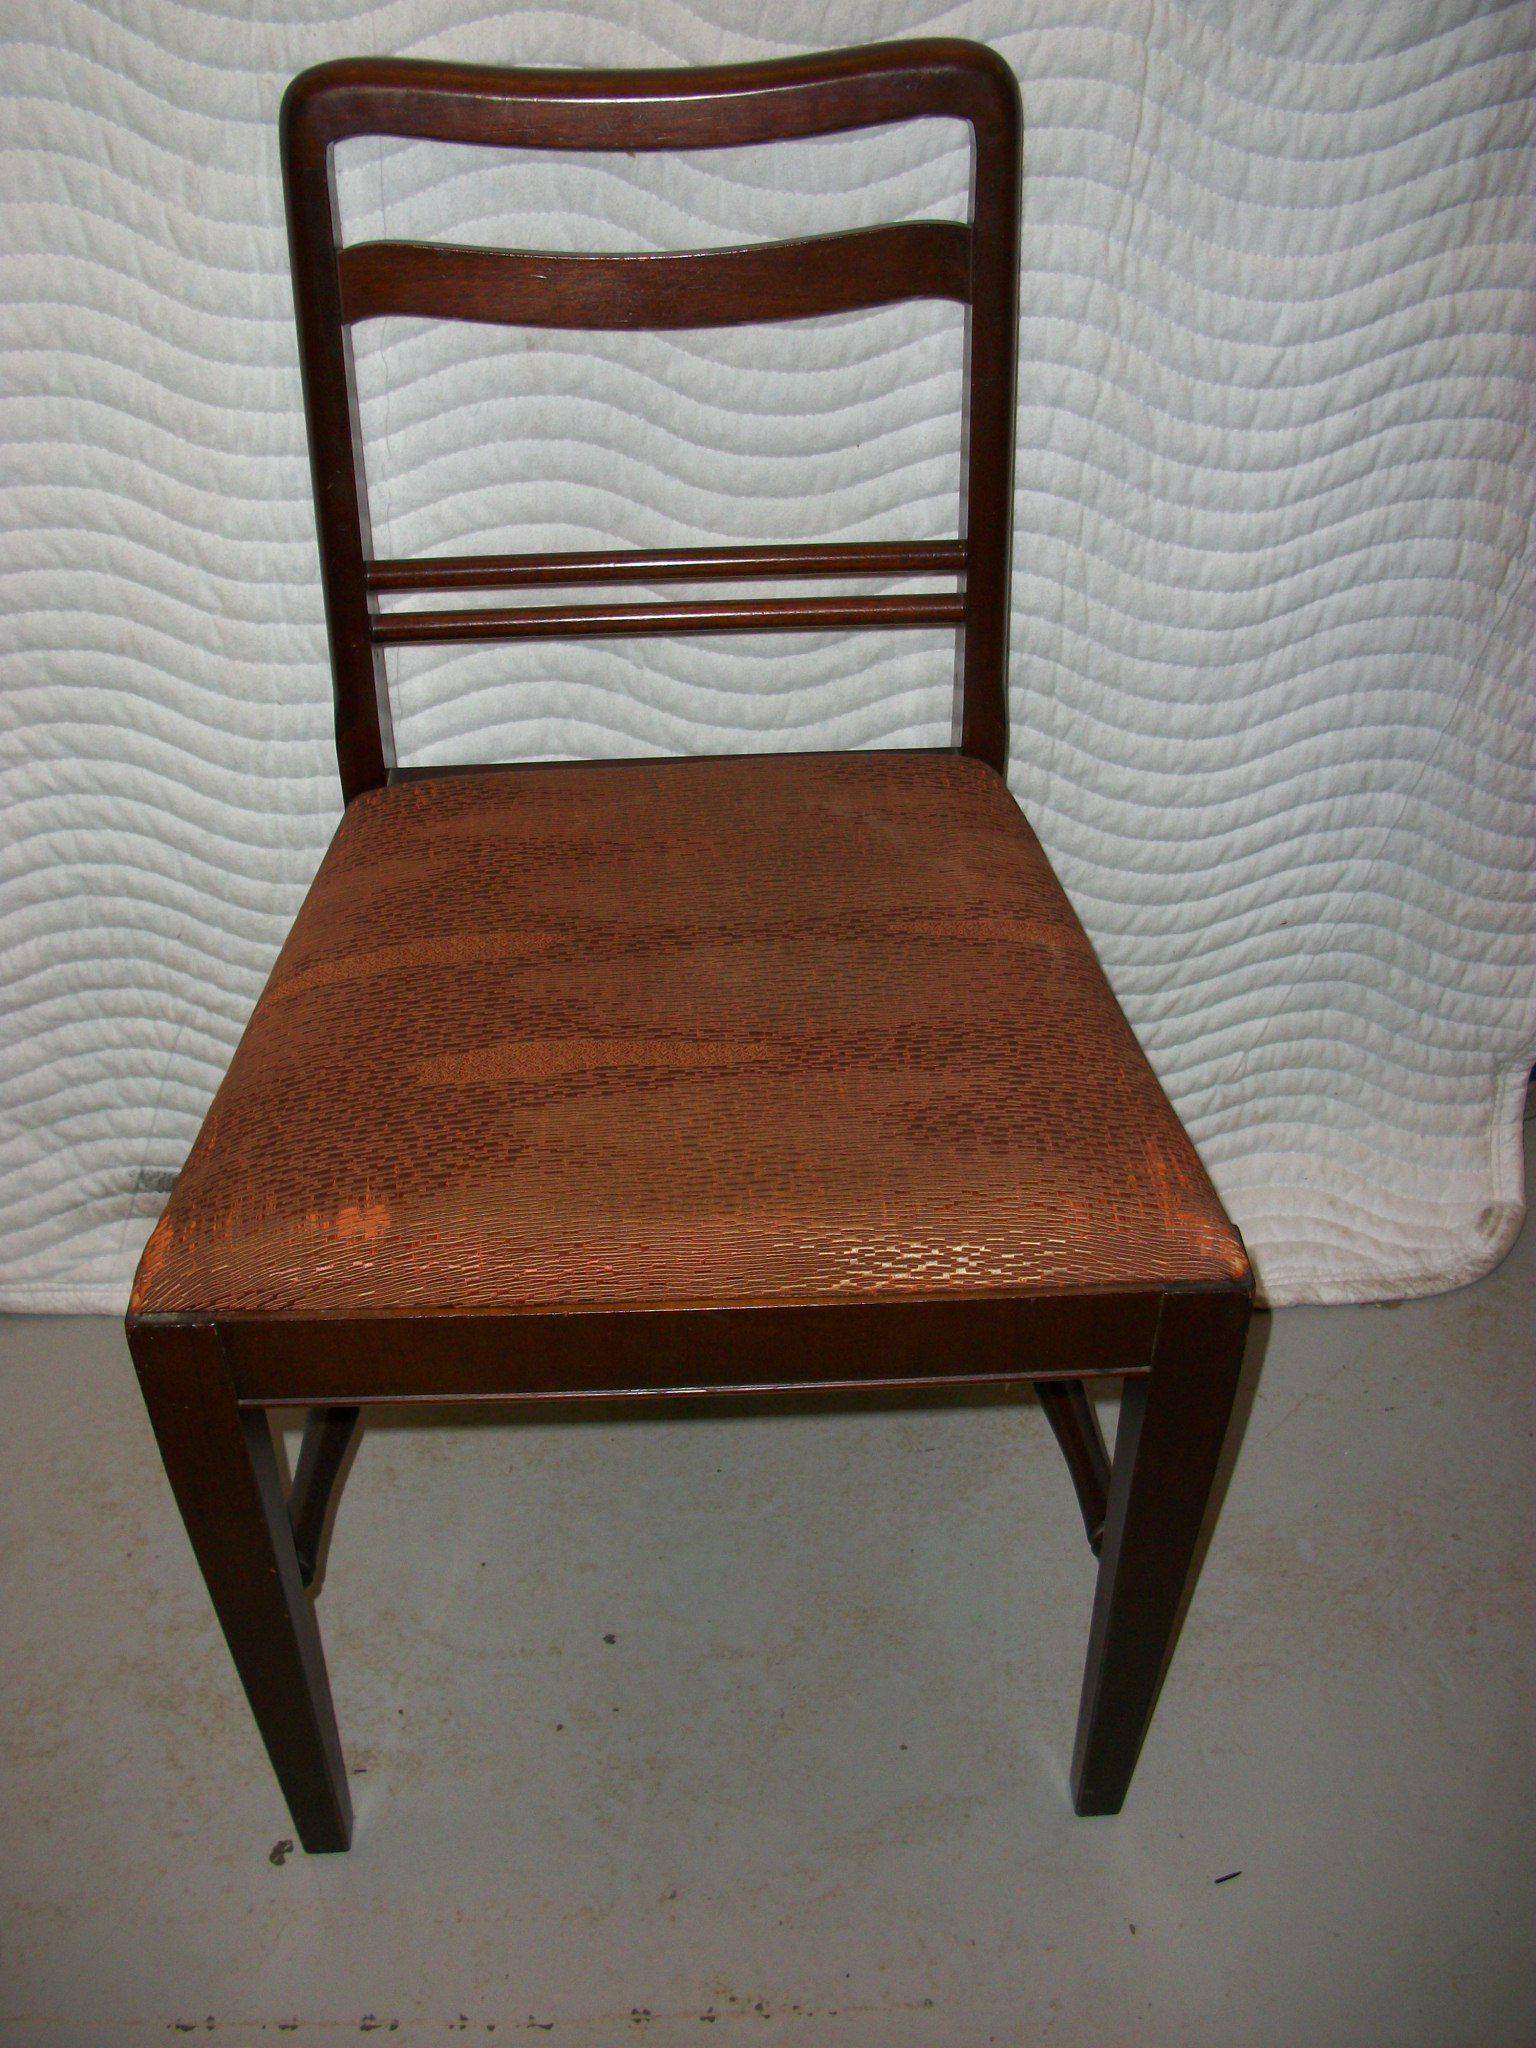 1992.40.4, chair, West Michigan Furniture Company, ca. 1927. - 1992.40.4, Chair, West Michigan Furniture Company, Ca. 1927